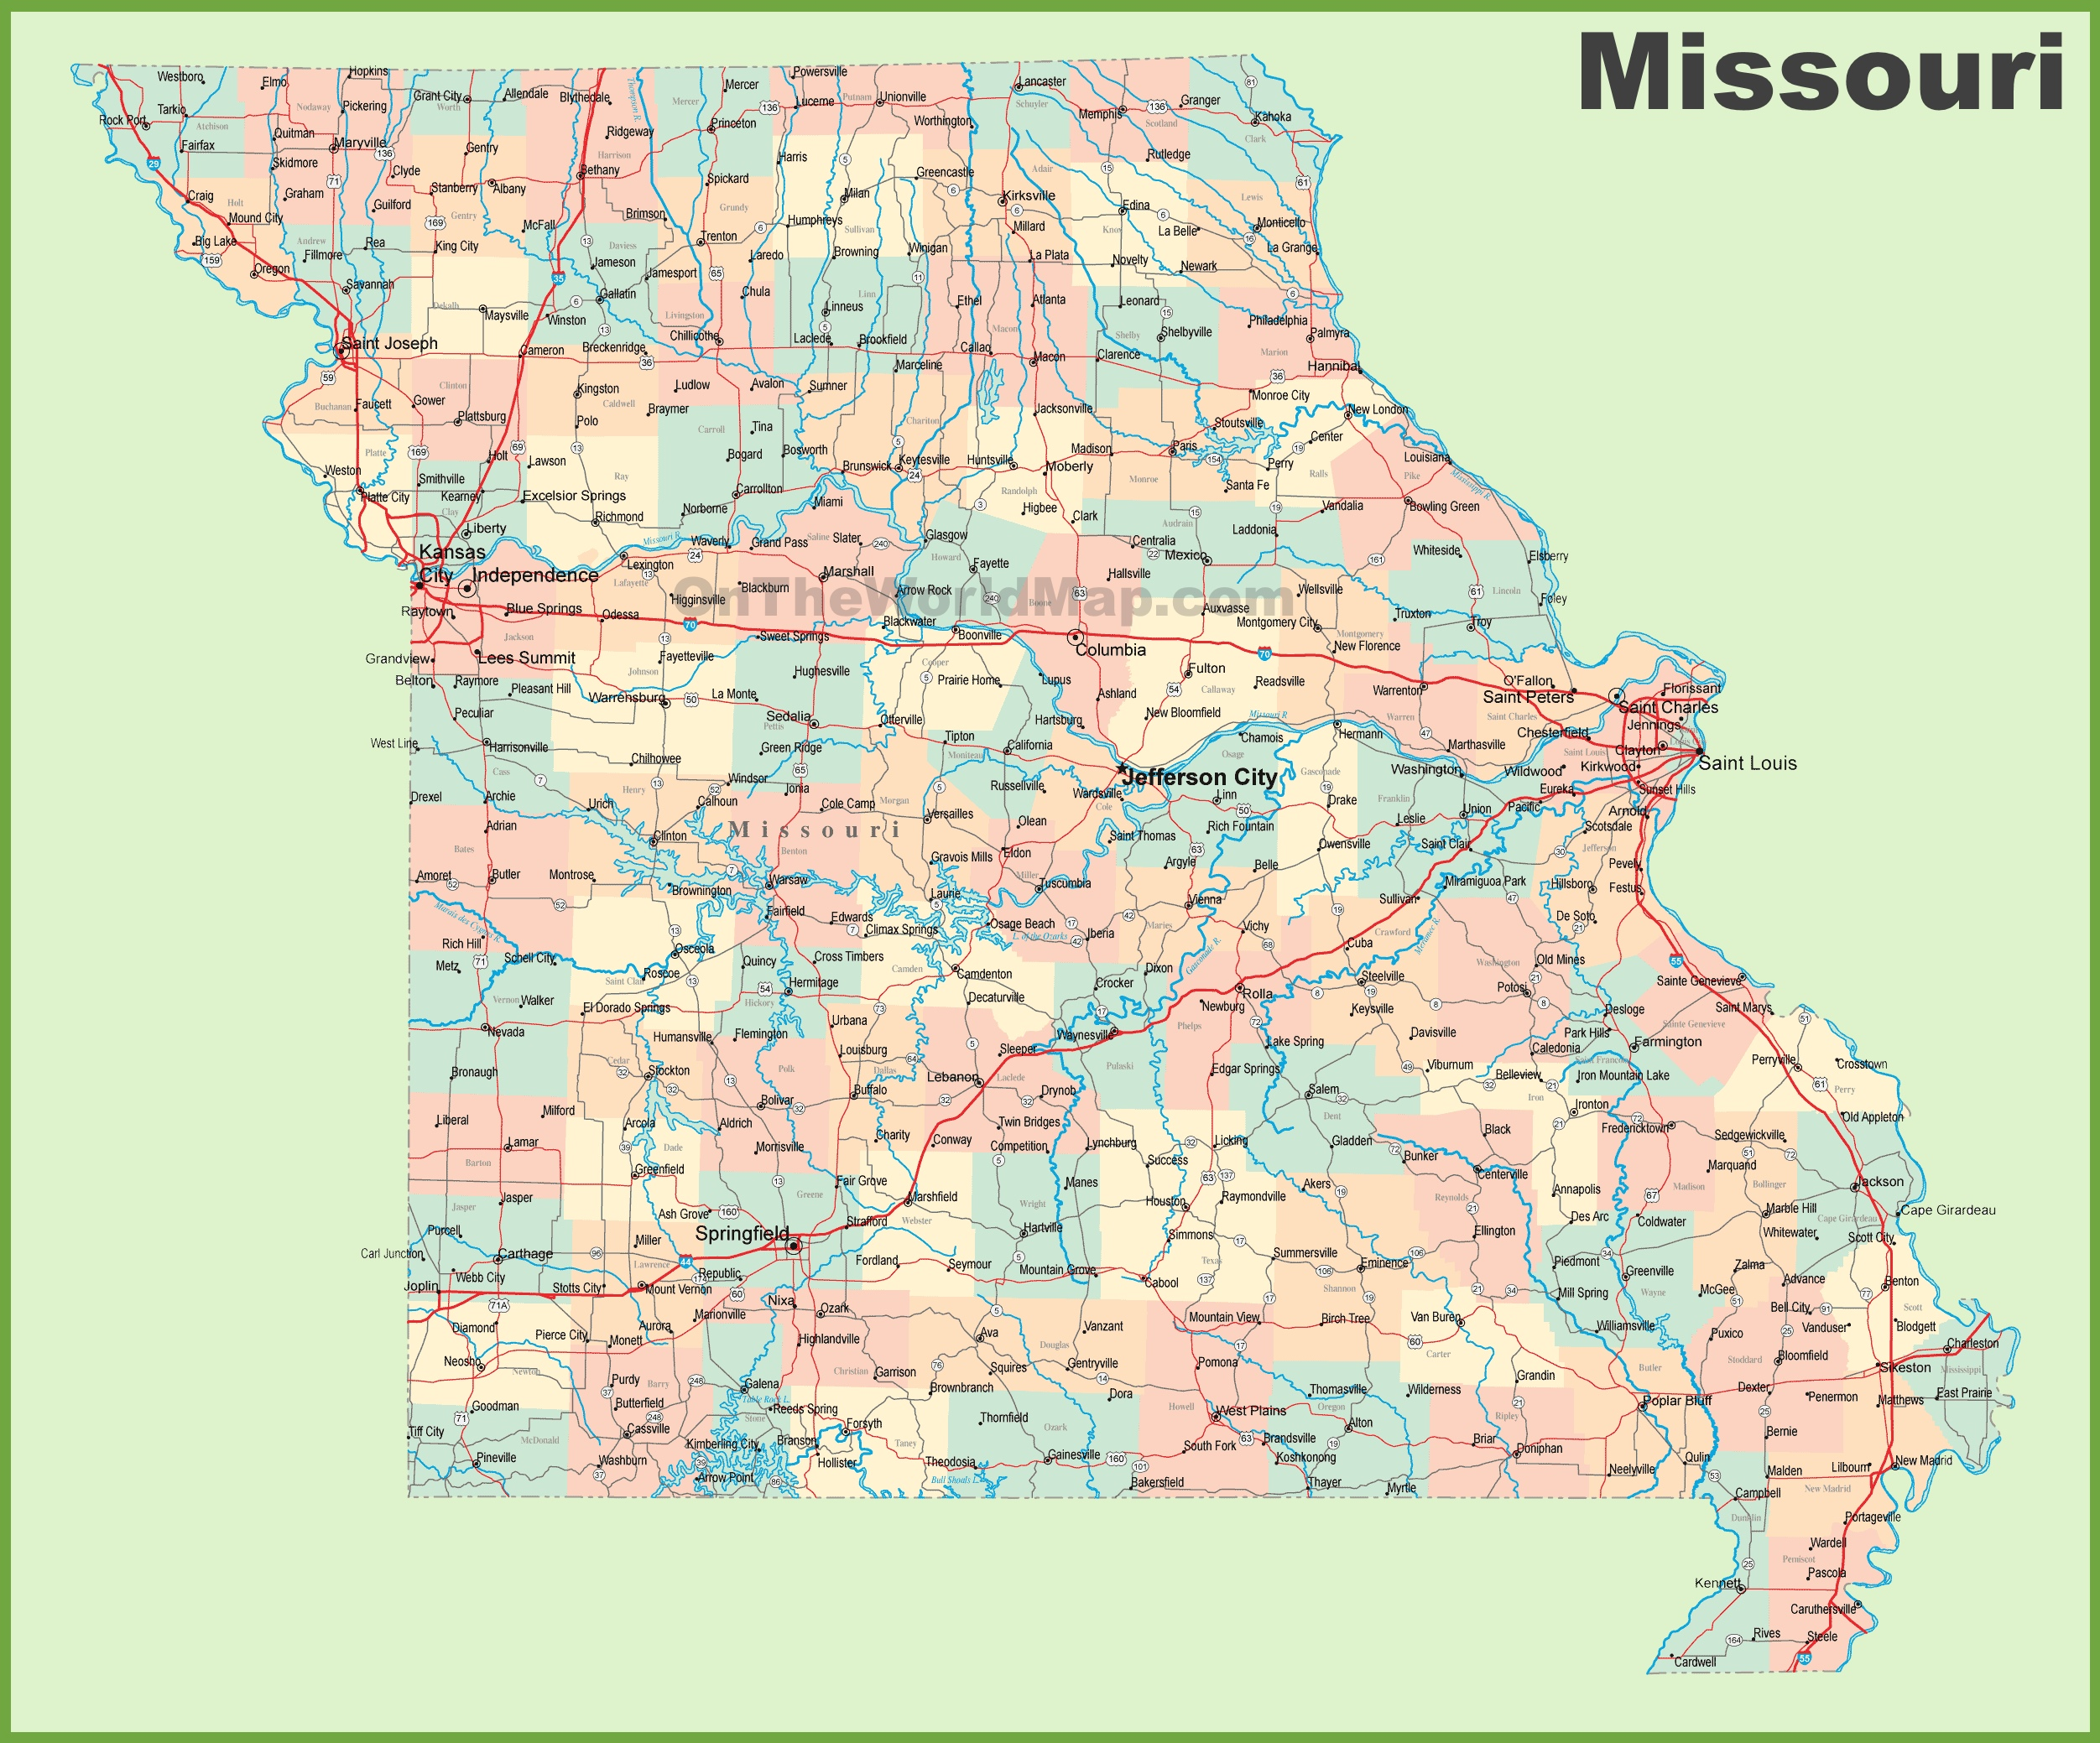 Missouri State Maps USA Maps Of Missouri MO - Missouri state map usa